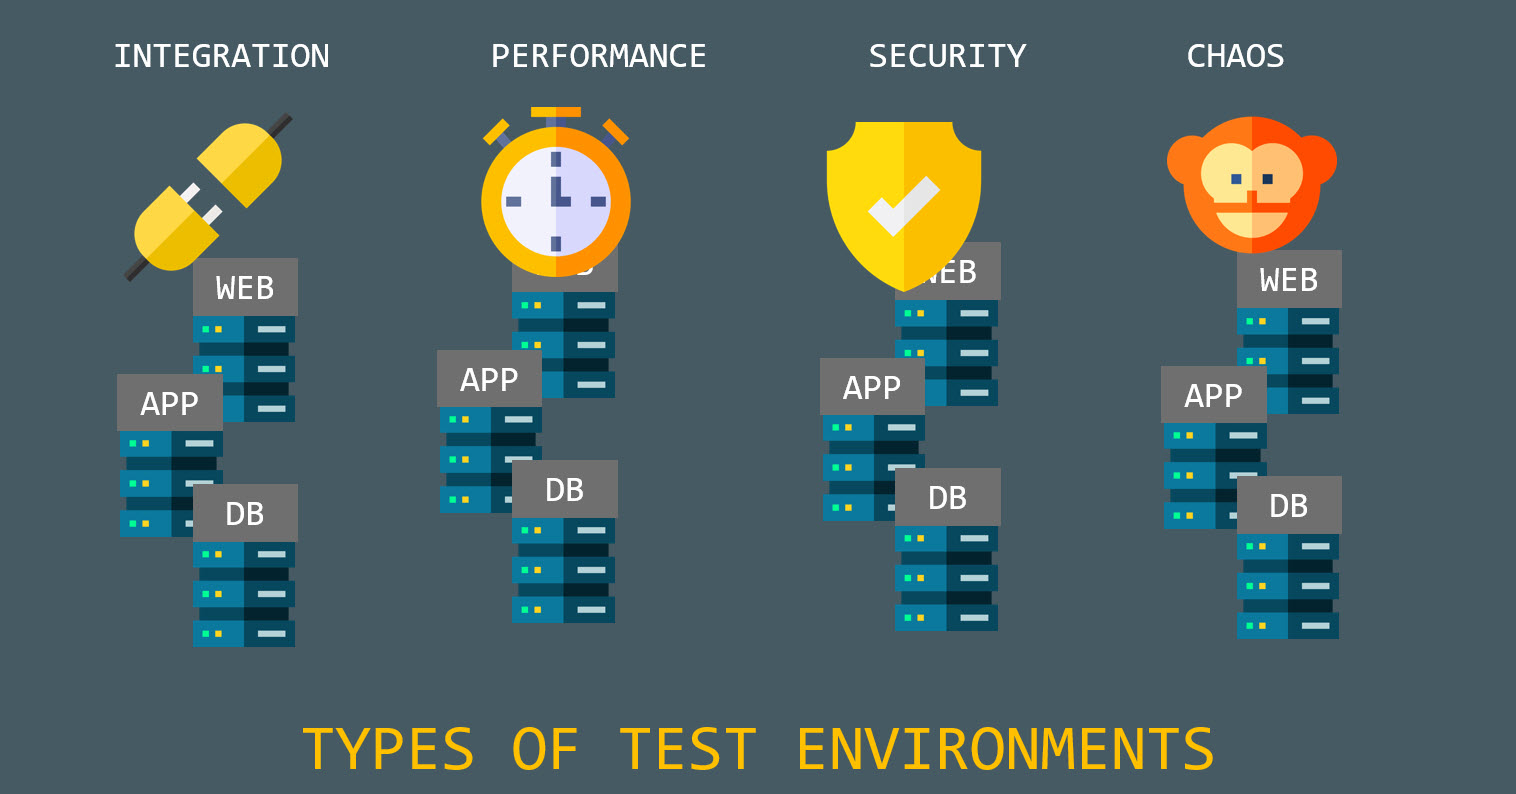 Types of Test Environments